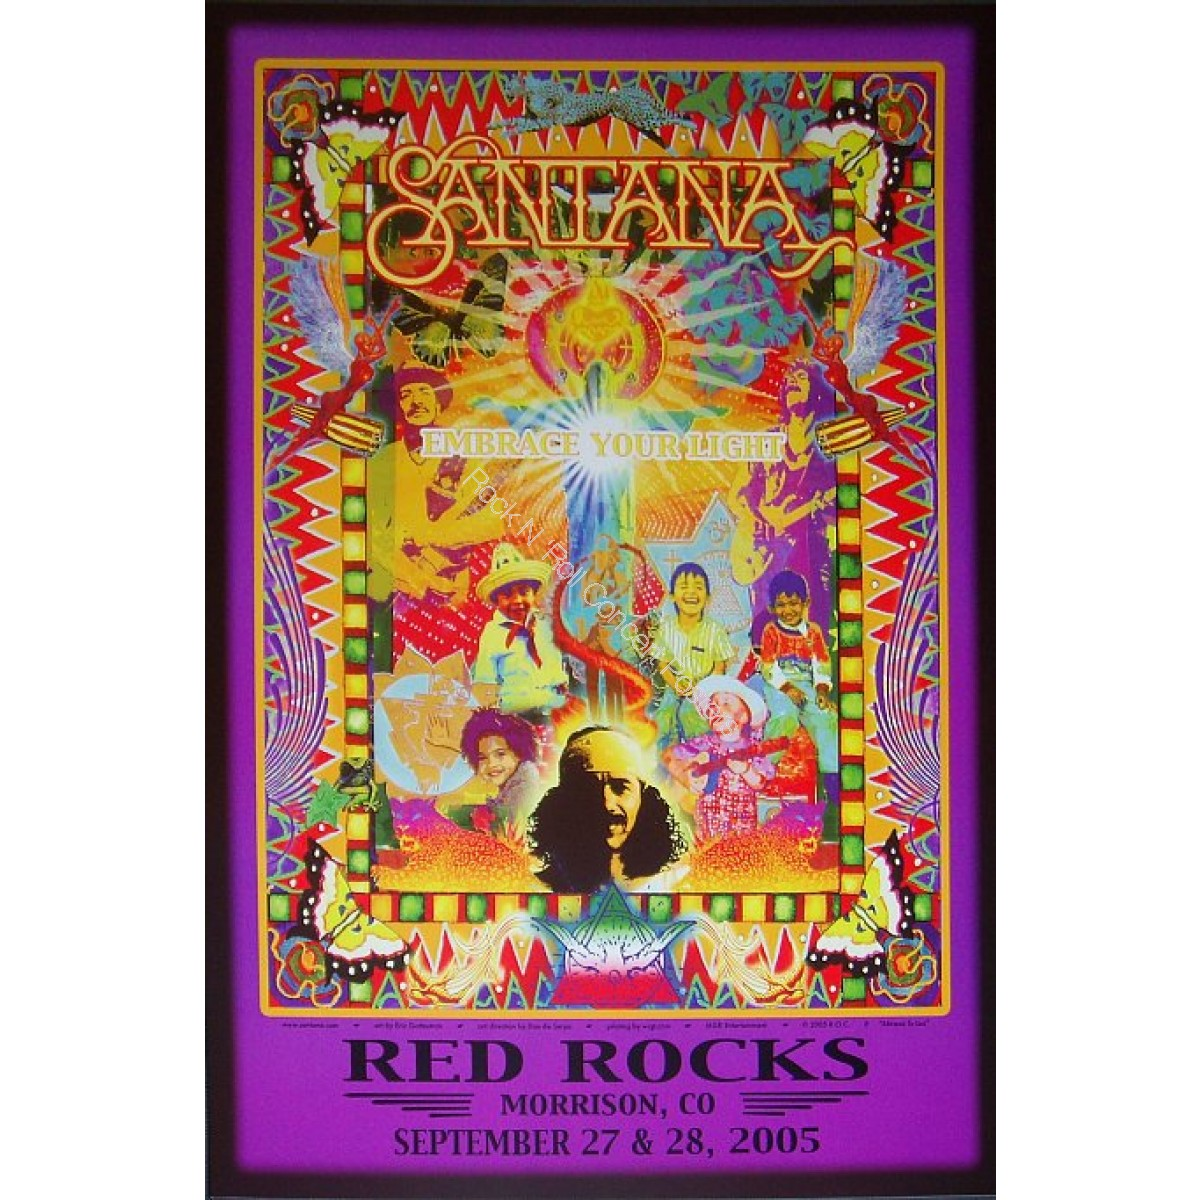 Santana  Red Rocks  9/27-28/05 Limited edition poster